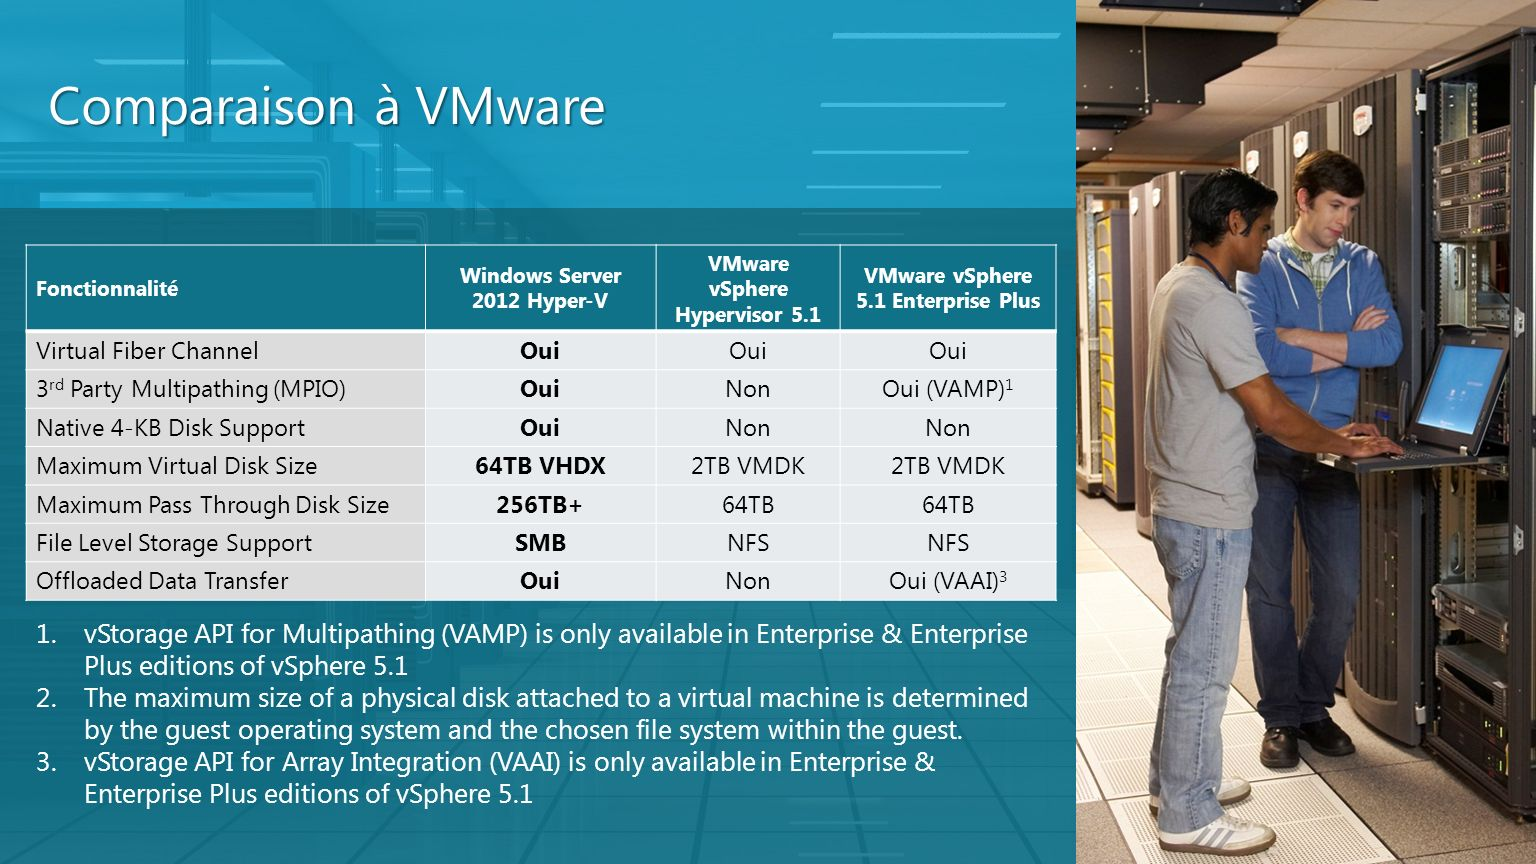 Comparaison à VMware Fonctionnalité. Windows Server 2012 Hyper-V. VMware vSphere Hypervisor 5.1. VMware vSphere 5.1 Enterprise Plus.